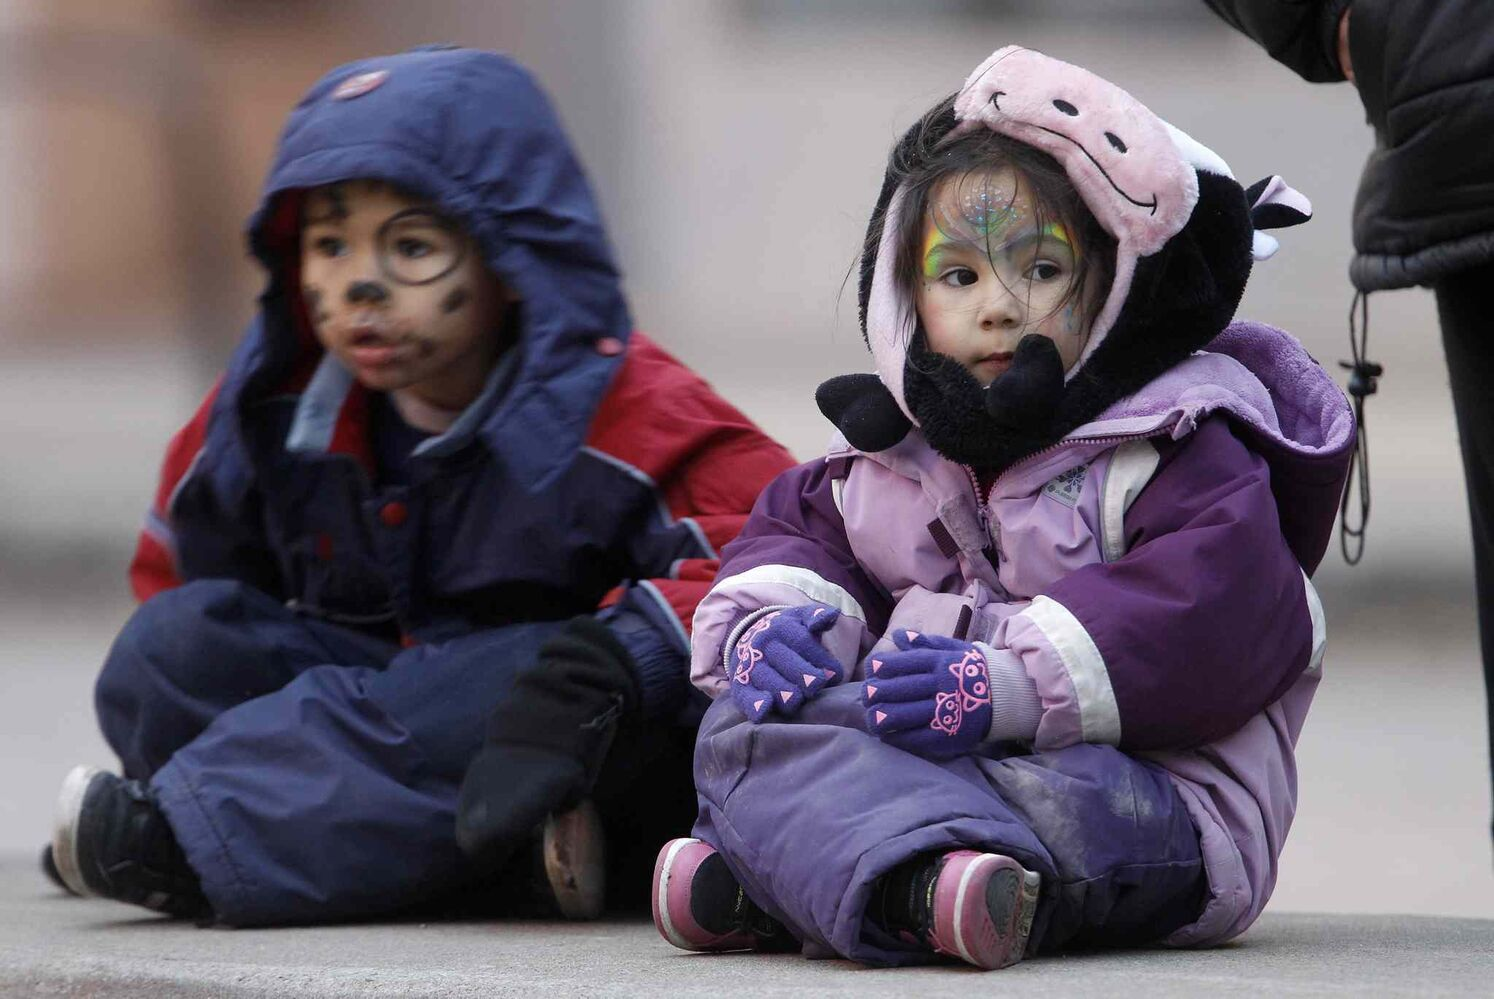 Logan Bancroft, 5, and his sister, Asia, 4, wait for the Santa Claus Parade. (TREVOR HAGAN / WINNIPEG FREE PRESS)